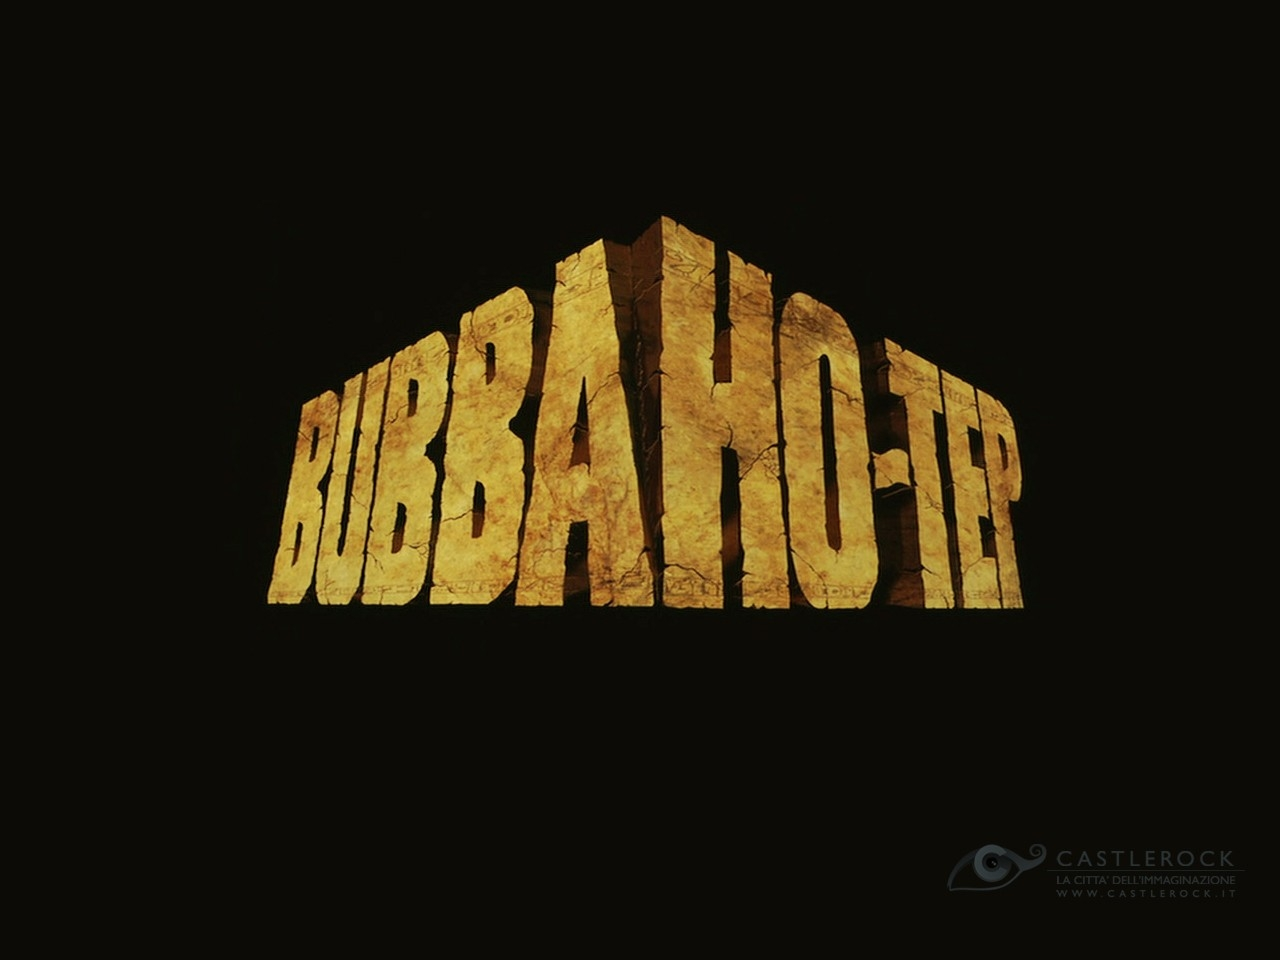 Wallpaper del film Bubba Ho-Tep